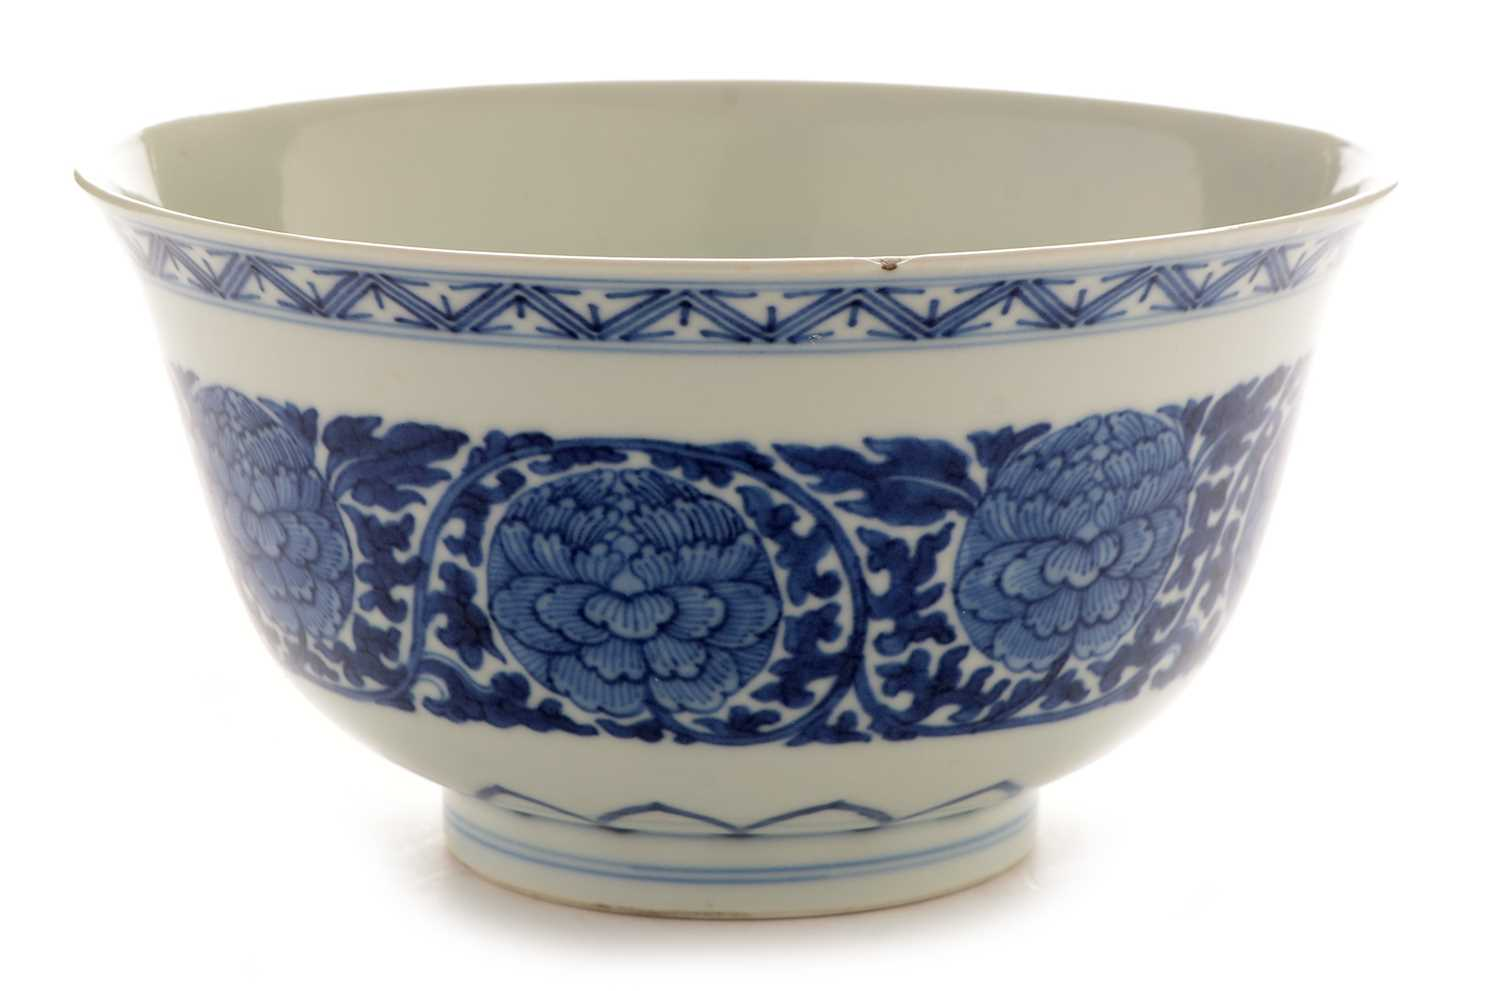 416 - Chinese blue and white bowl, Qianlong mark